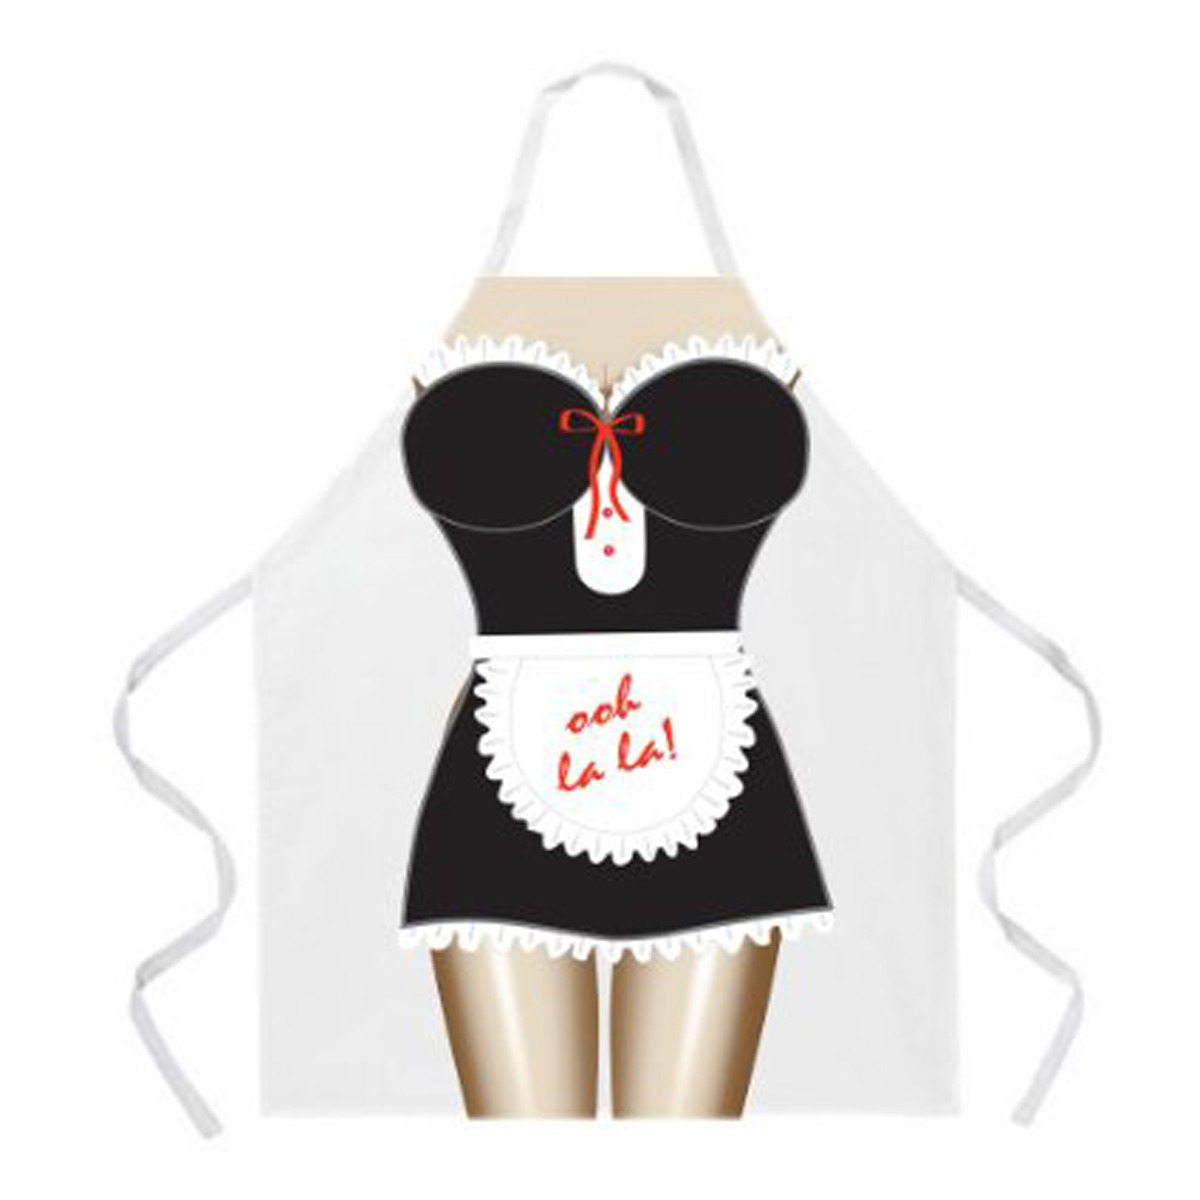 White lace apron ebay - Sexy Hot Nurse Costume Cosplay Women Ladies Cooking